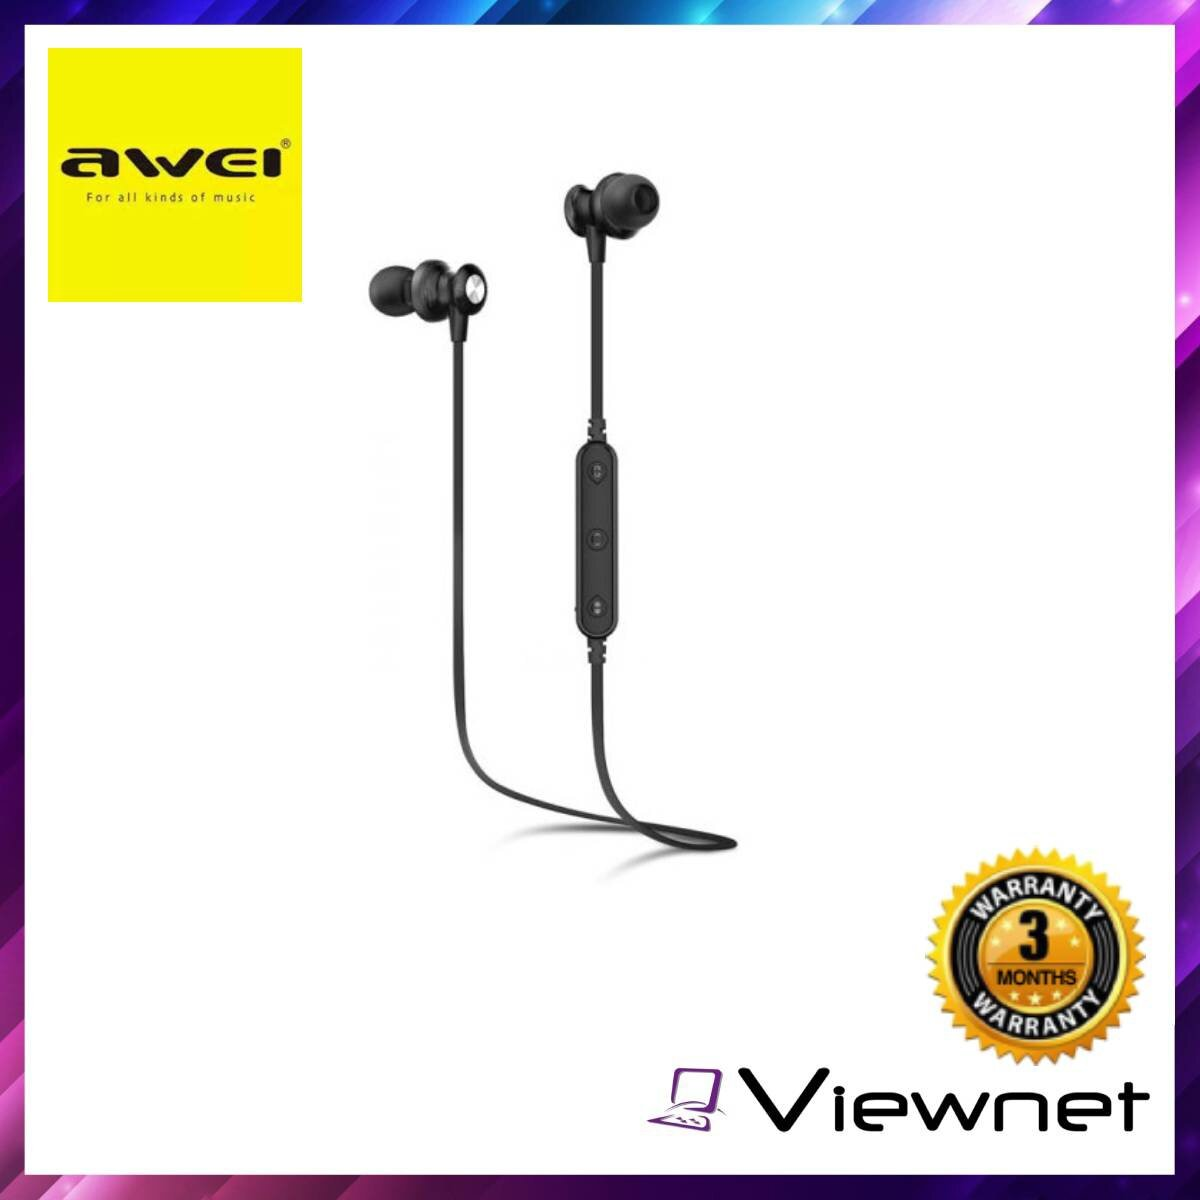 Awei B980BL Wireless Bluetooth Earphones, Sports Magnetic, Noise Cancellation